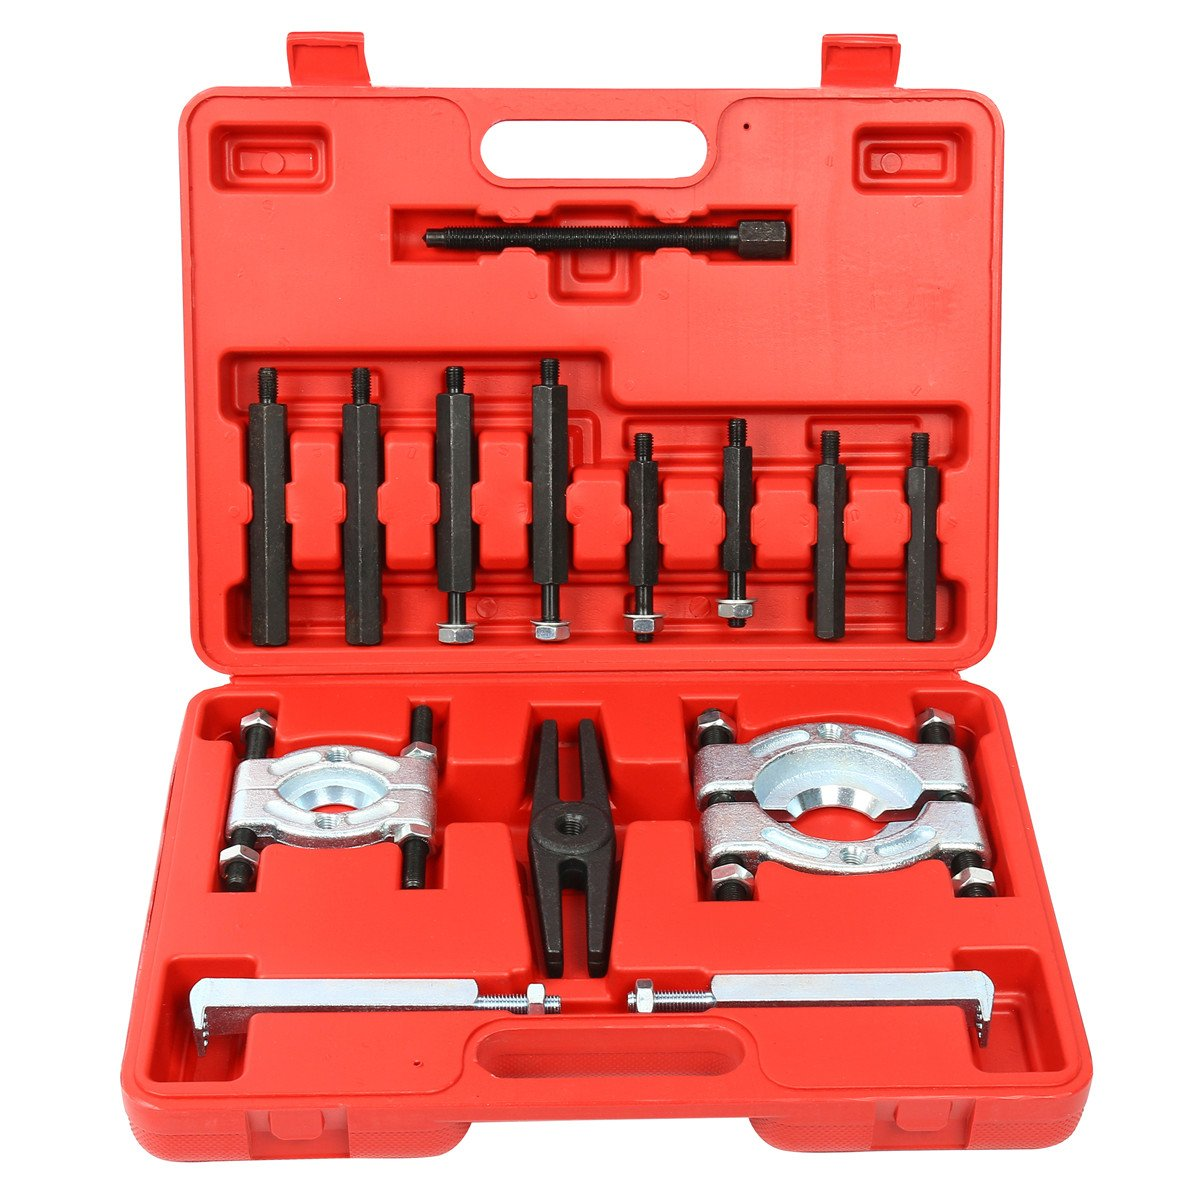 FreeTec Heavy Duty 14PCS Bearing Separator Puller Set 2' and 3' Splitters Remove Bearings Kit freebirdtrading FT0033